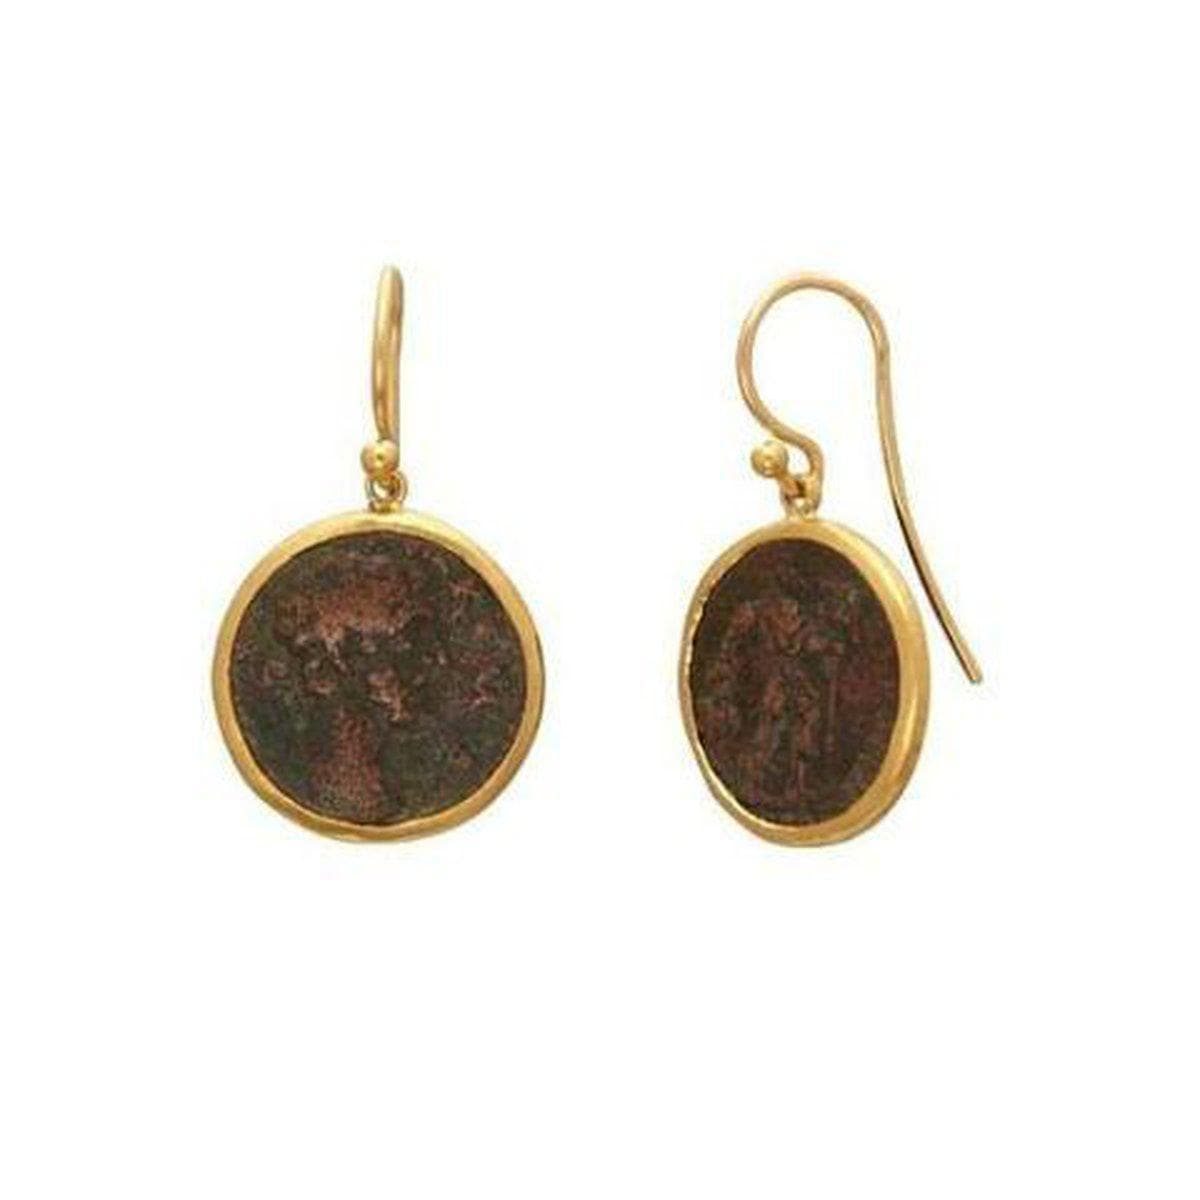 Antiquities 24K Gold Coin Earrings - E-U25838-CN-GURHAN-Renee Taylor Gallery